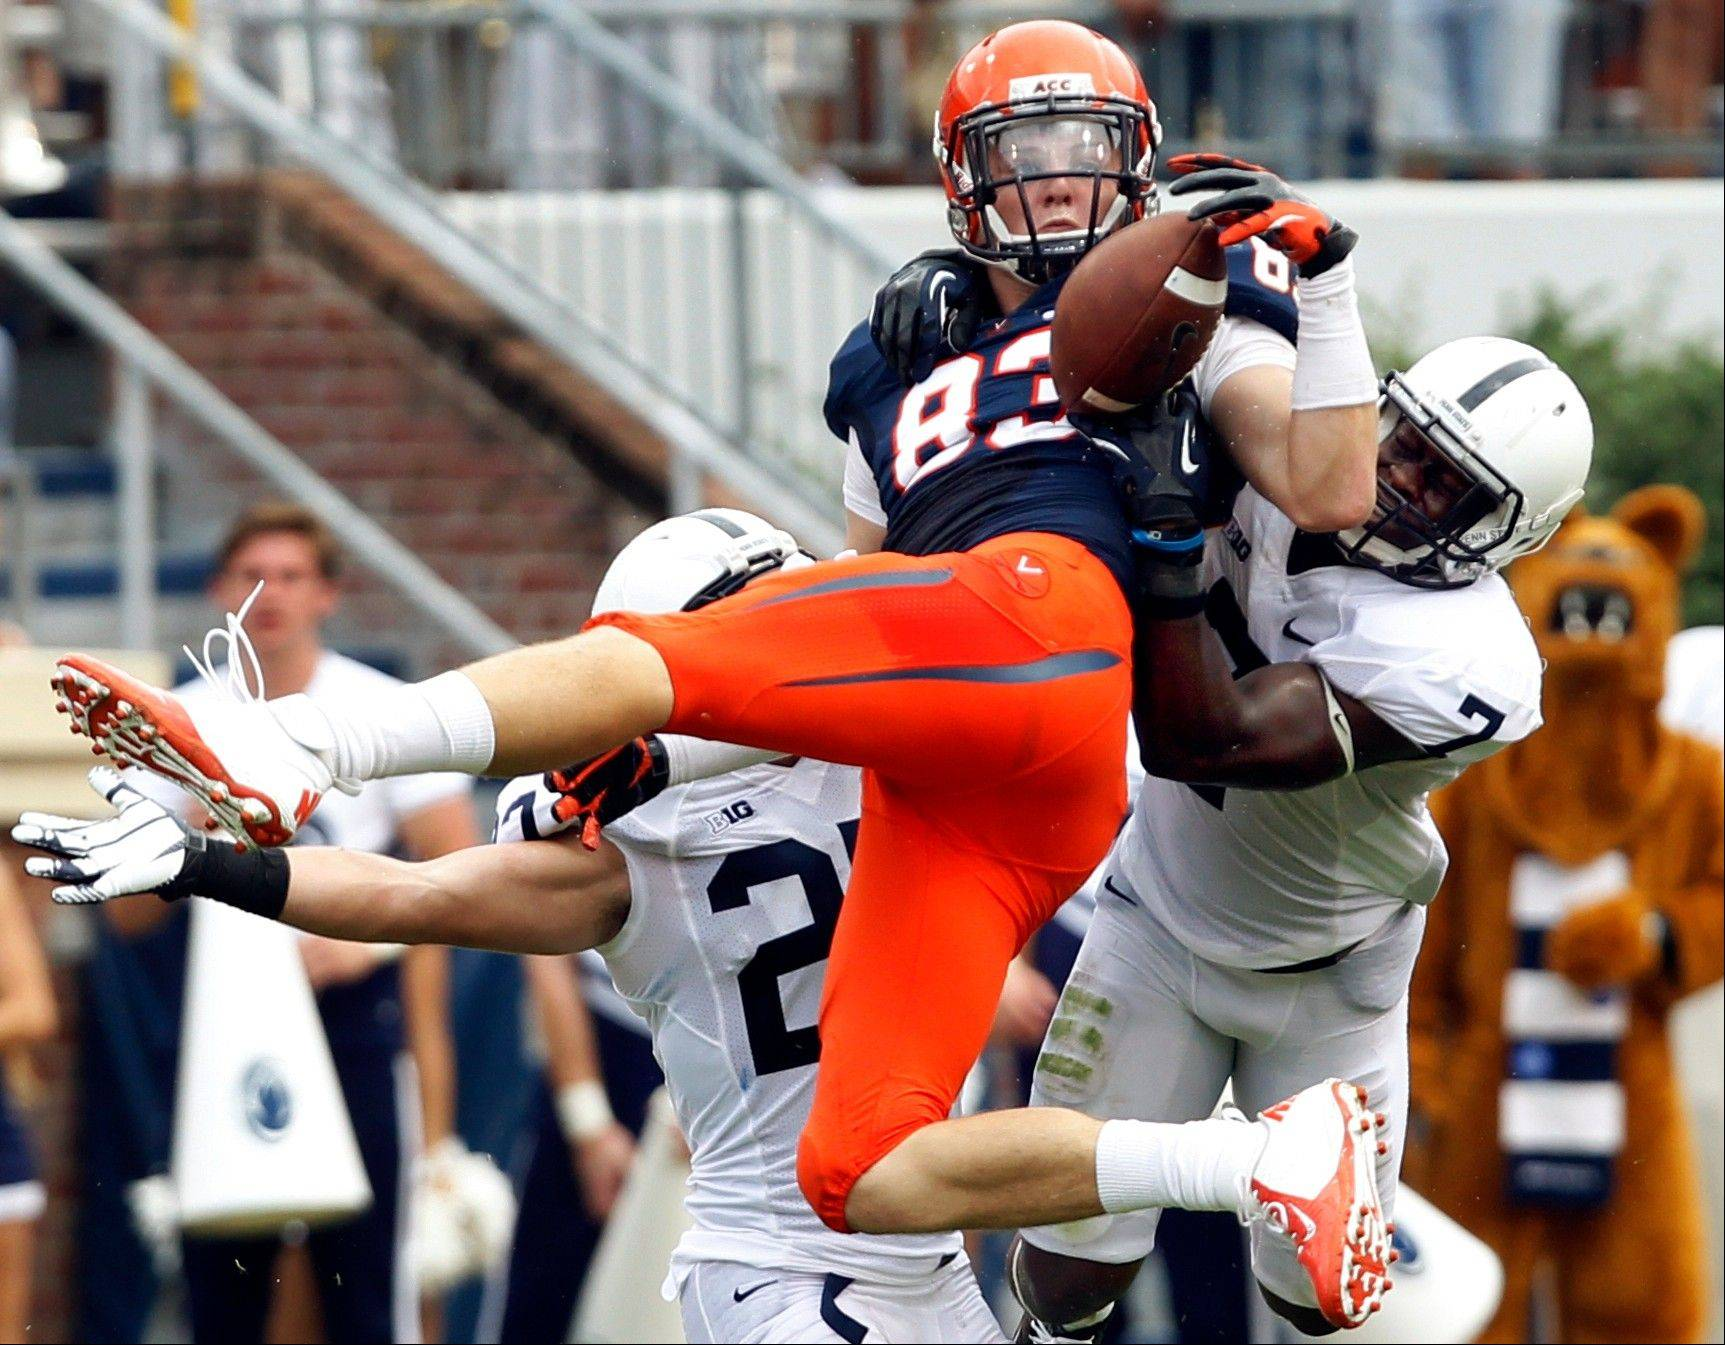 Virginia tight end Jake McGee makes a reception in front of Penn State linebacker T.J. Rhattigan (22) and safety Stephen Obeng-Agyapong (7) during the second half Saturday in Charlottesville, Va.